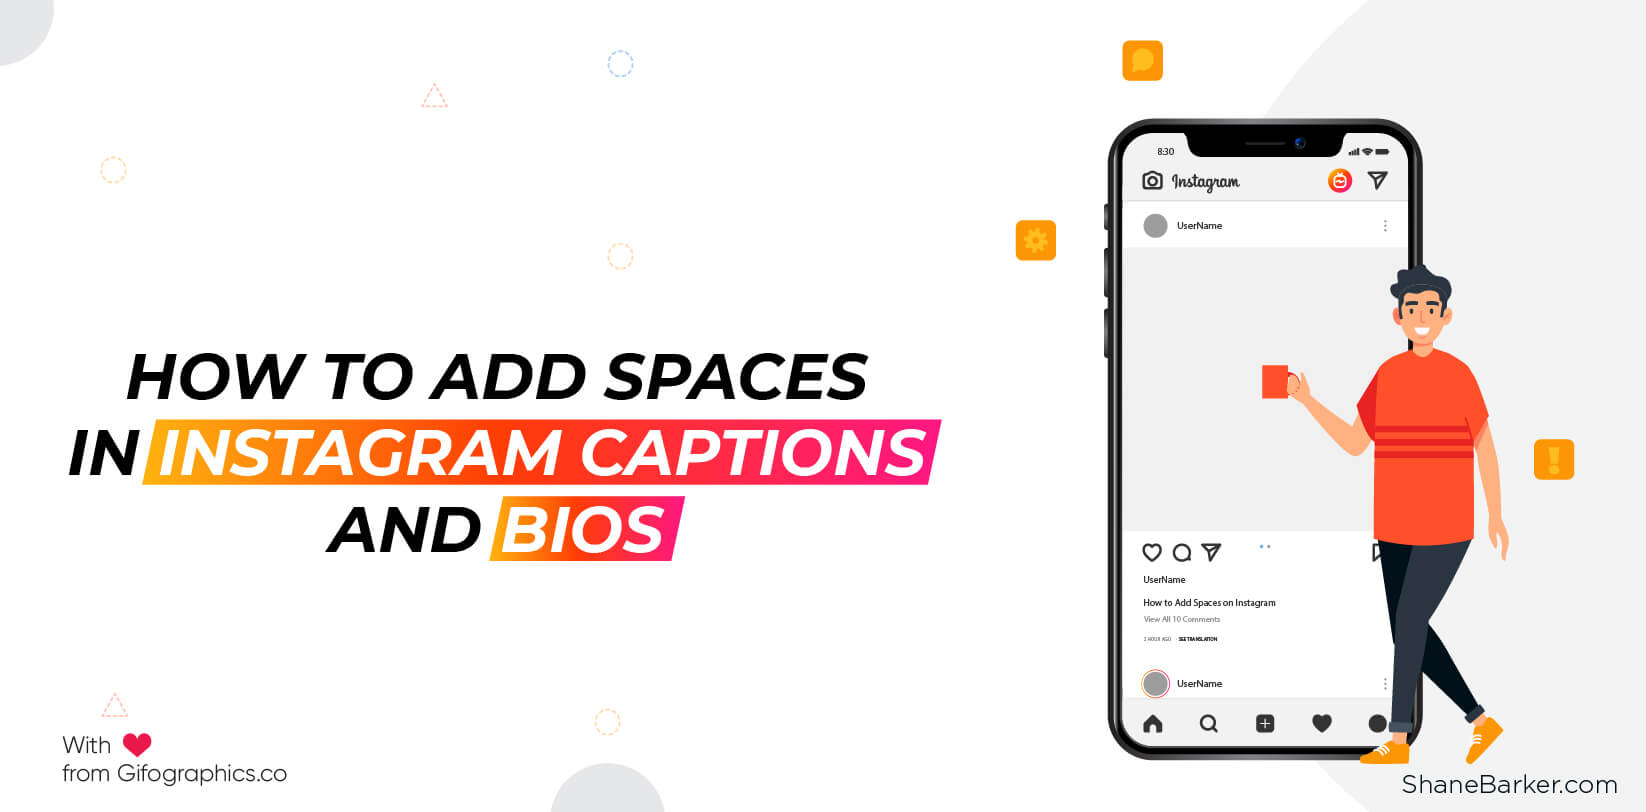 How To Add Spaces In Instagram Captions And Bios Shane Barker